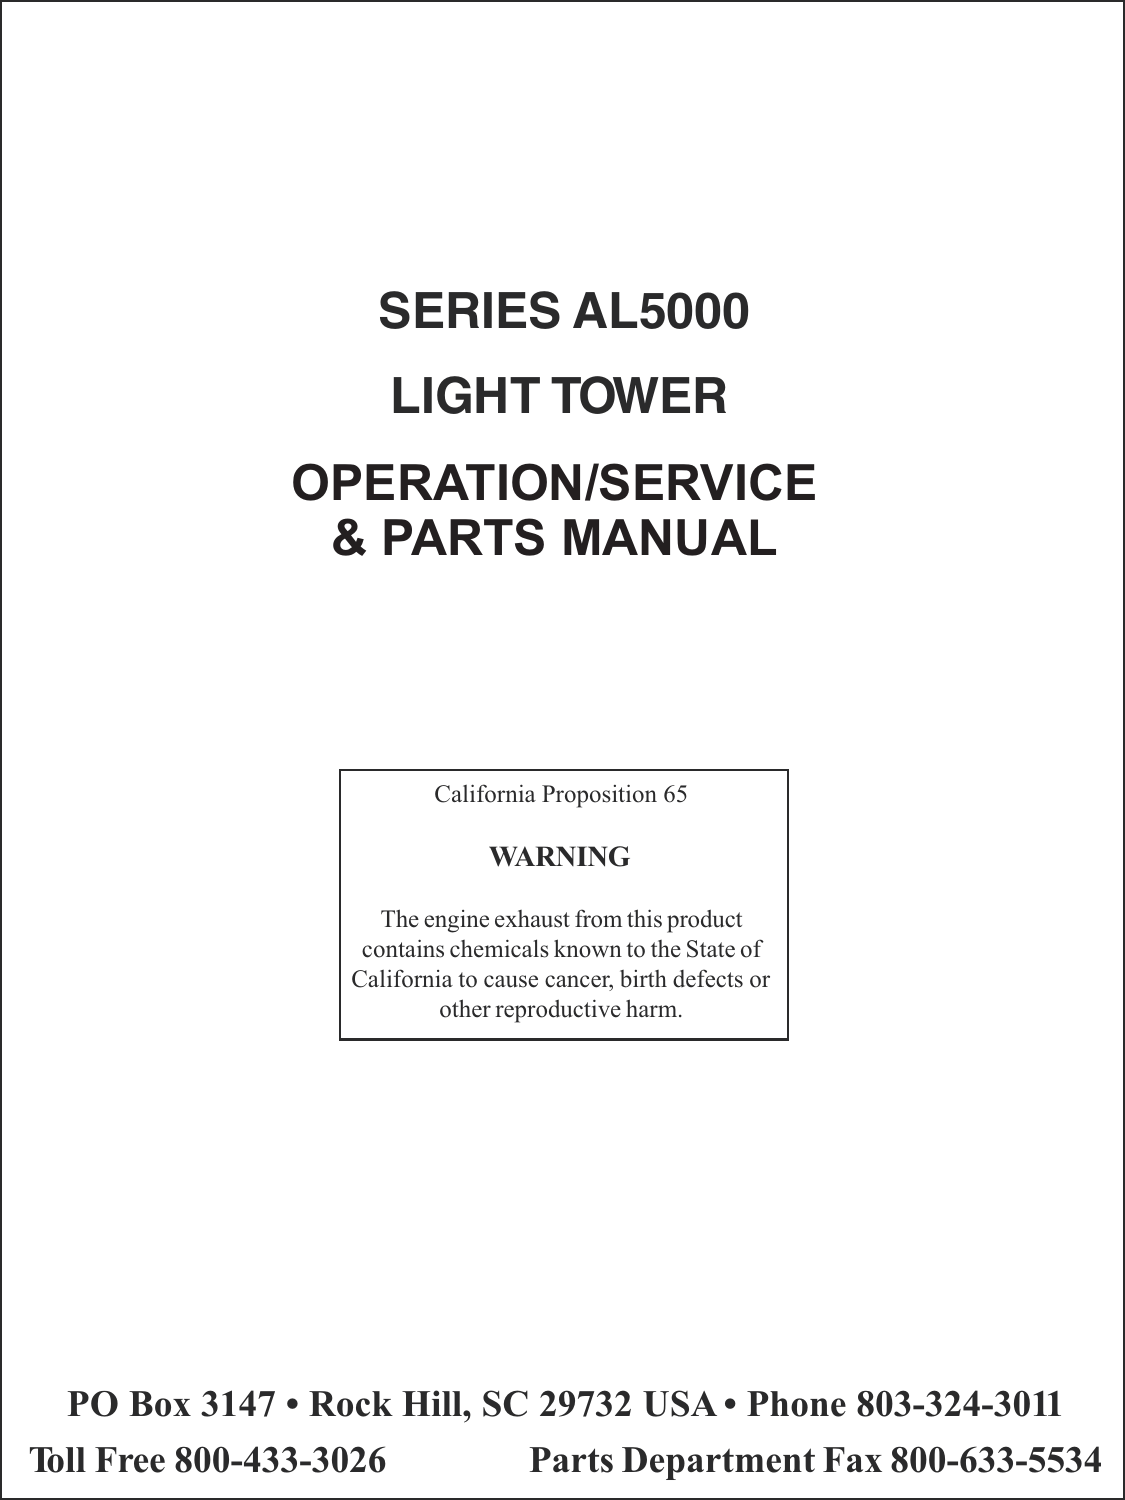 Terex Marine Lighting Al5000 Users Manual Revb September 2006pmd Wiring Diagrams